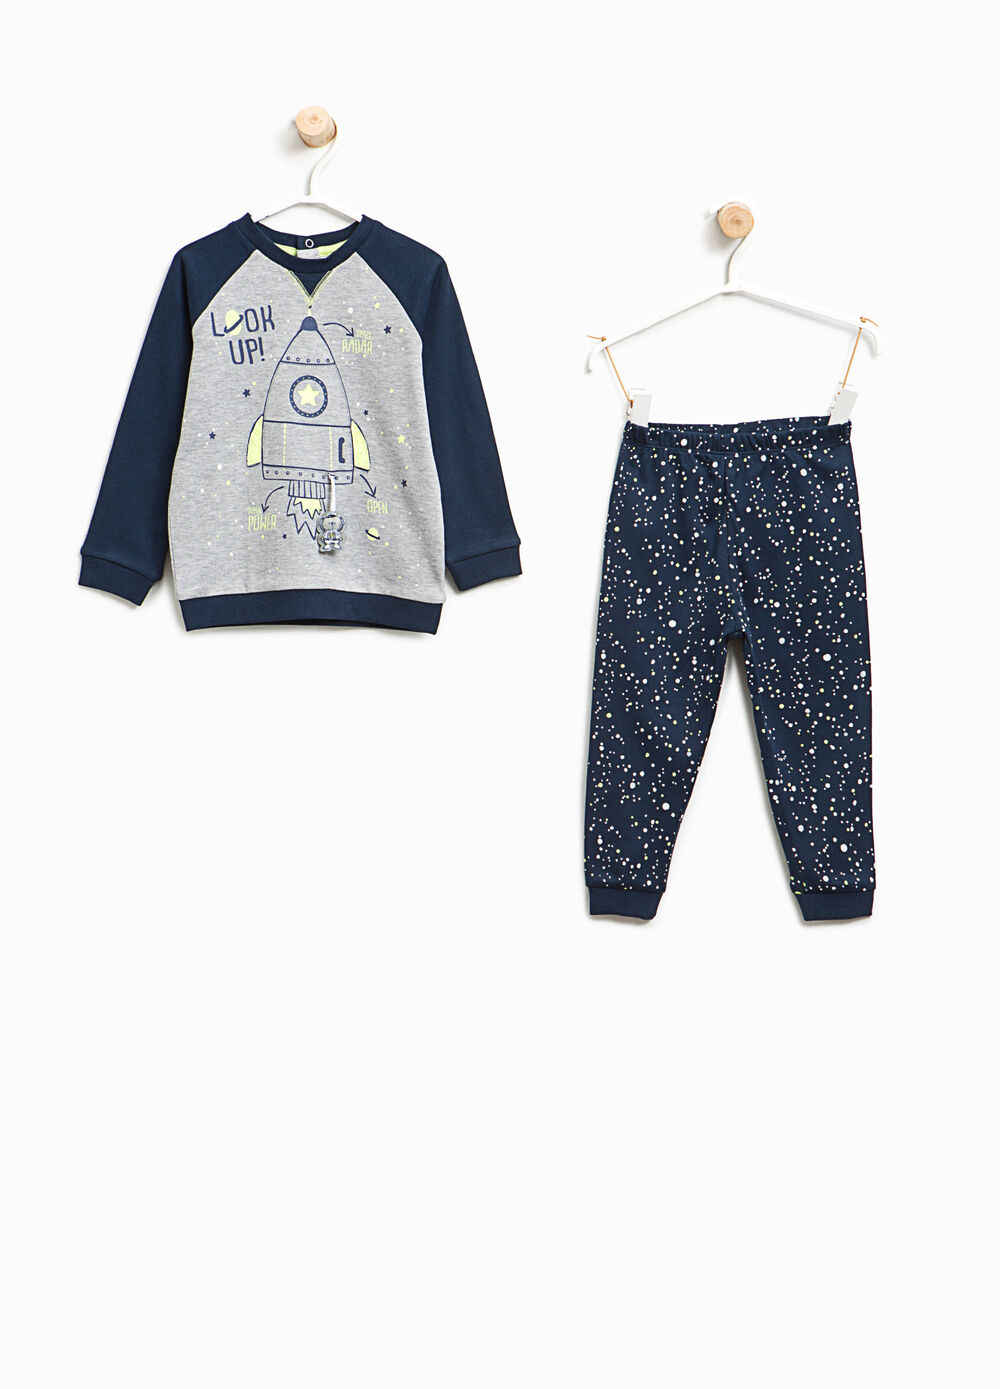 100% cotton pyjamas with print and pattern